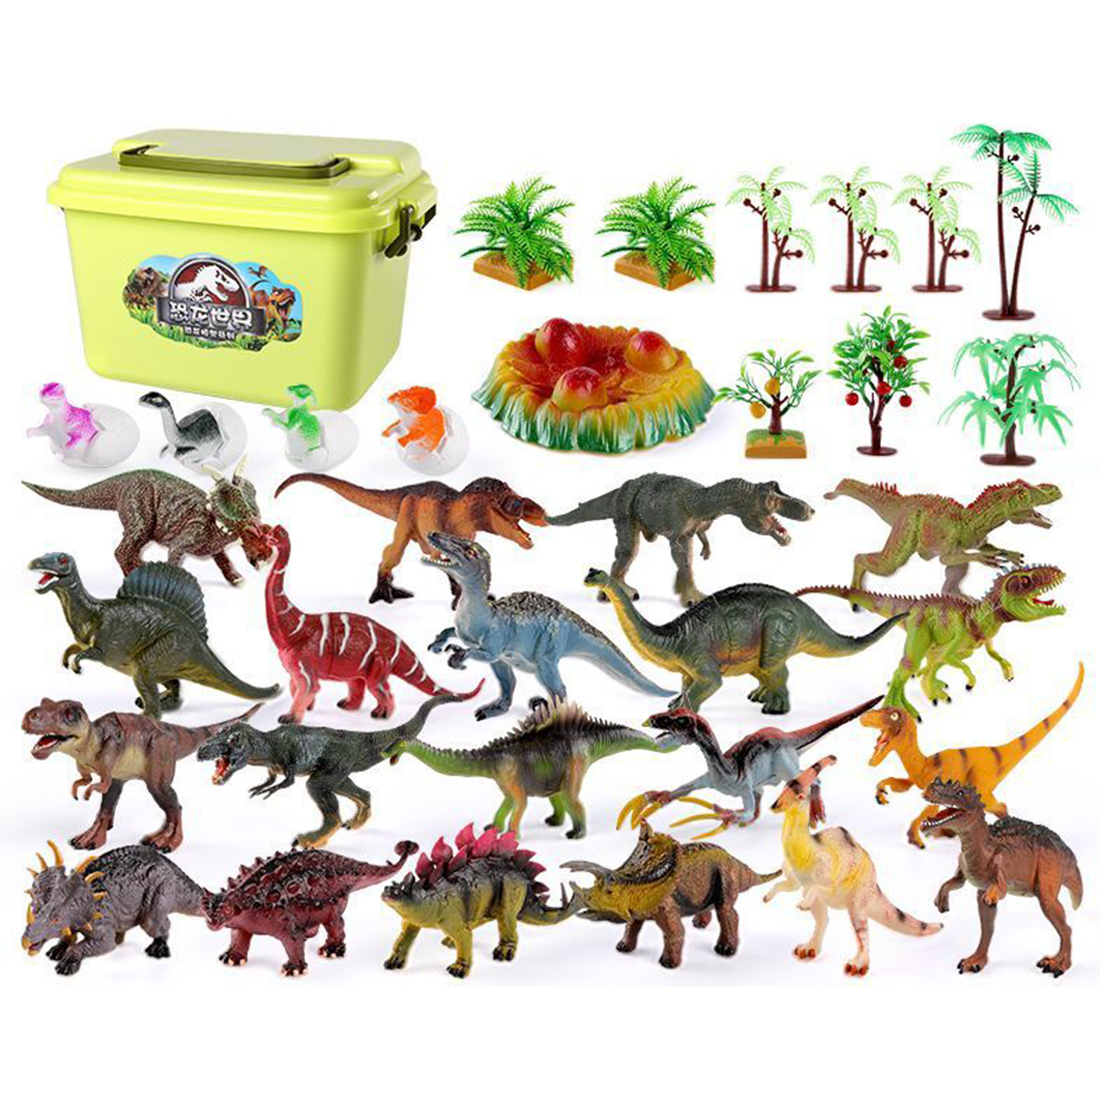 20 Types Dinosaur Simulation Model Figure Toy 34Pcs Children Early Education Cognition Learning Set for Kid Birthday Kits20 Types Dinosaur Simulation Model Figure Toy 34Pcs Children Early Education Cognition Learning Set for Kid Birthday Kits